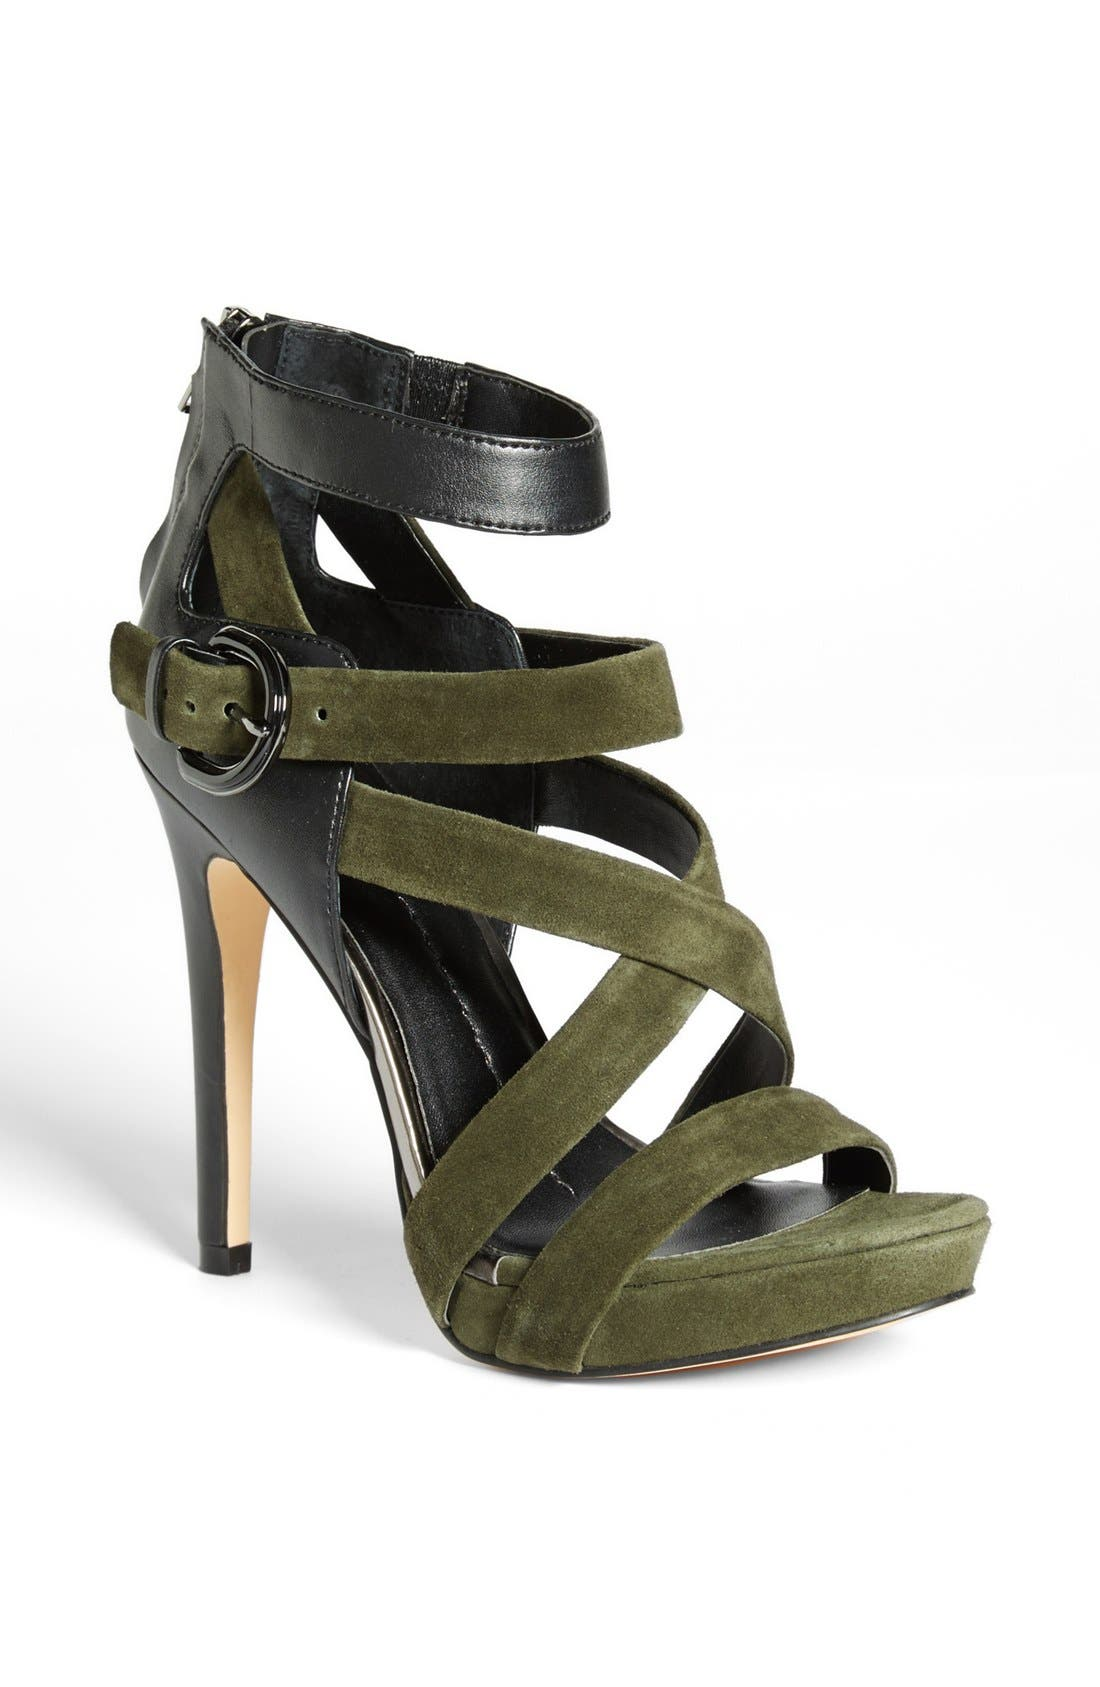 Main Image - DV by Dolce Vita 'Scotlyn' Leather & Suede Sandal